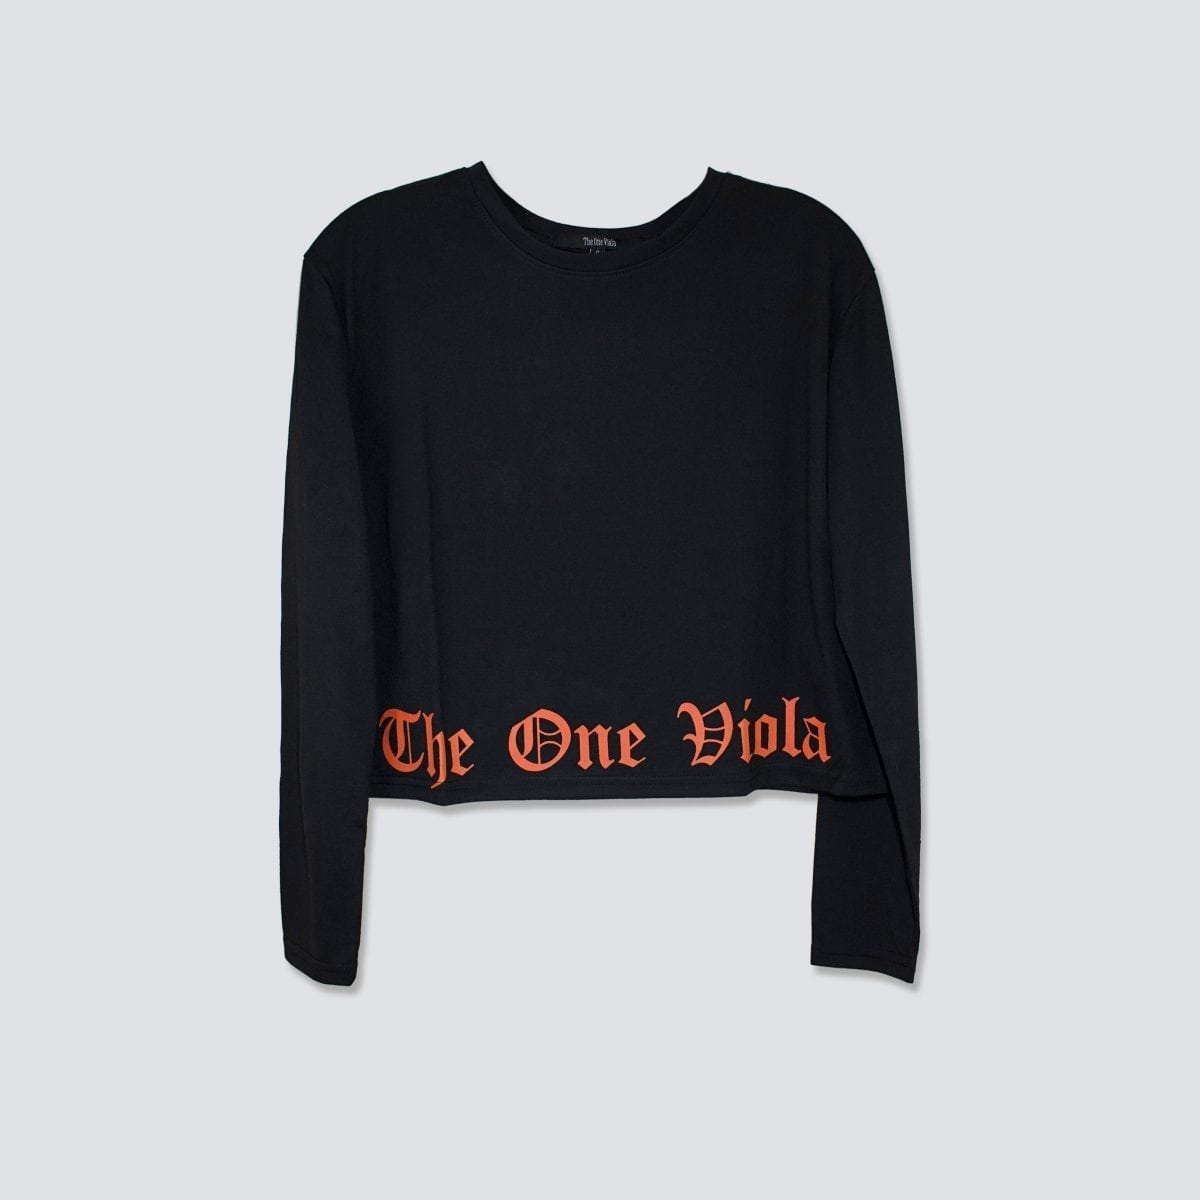 black long sleeve streetwear crop top